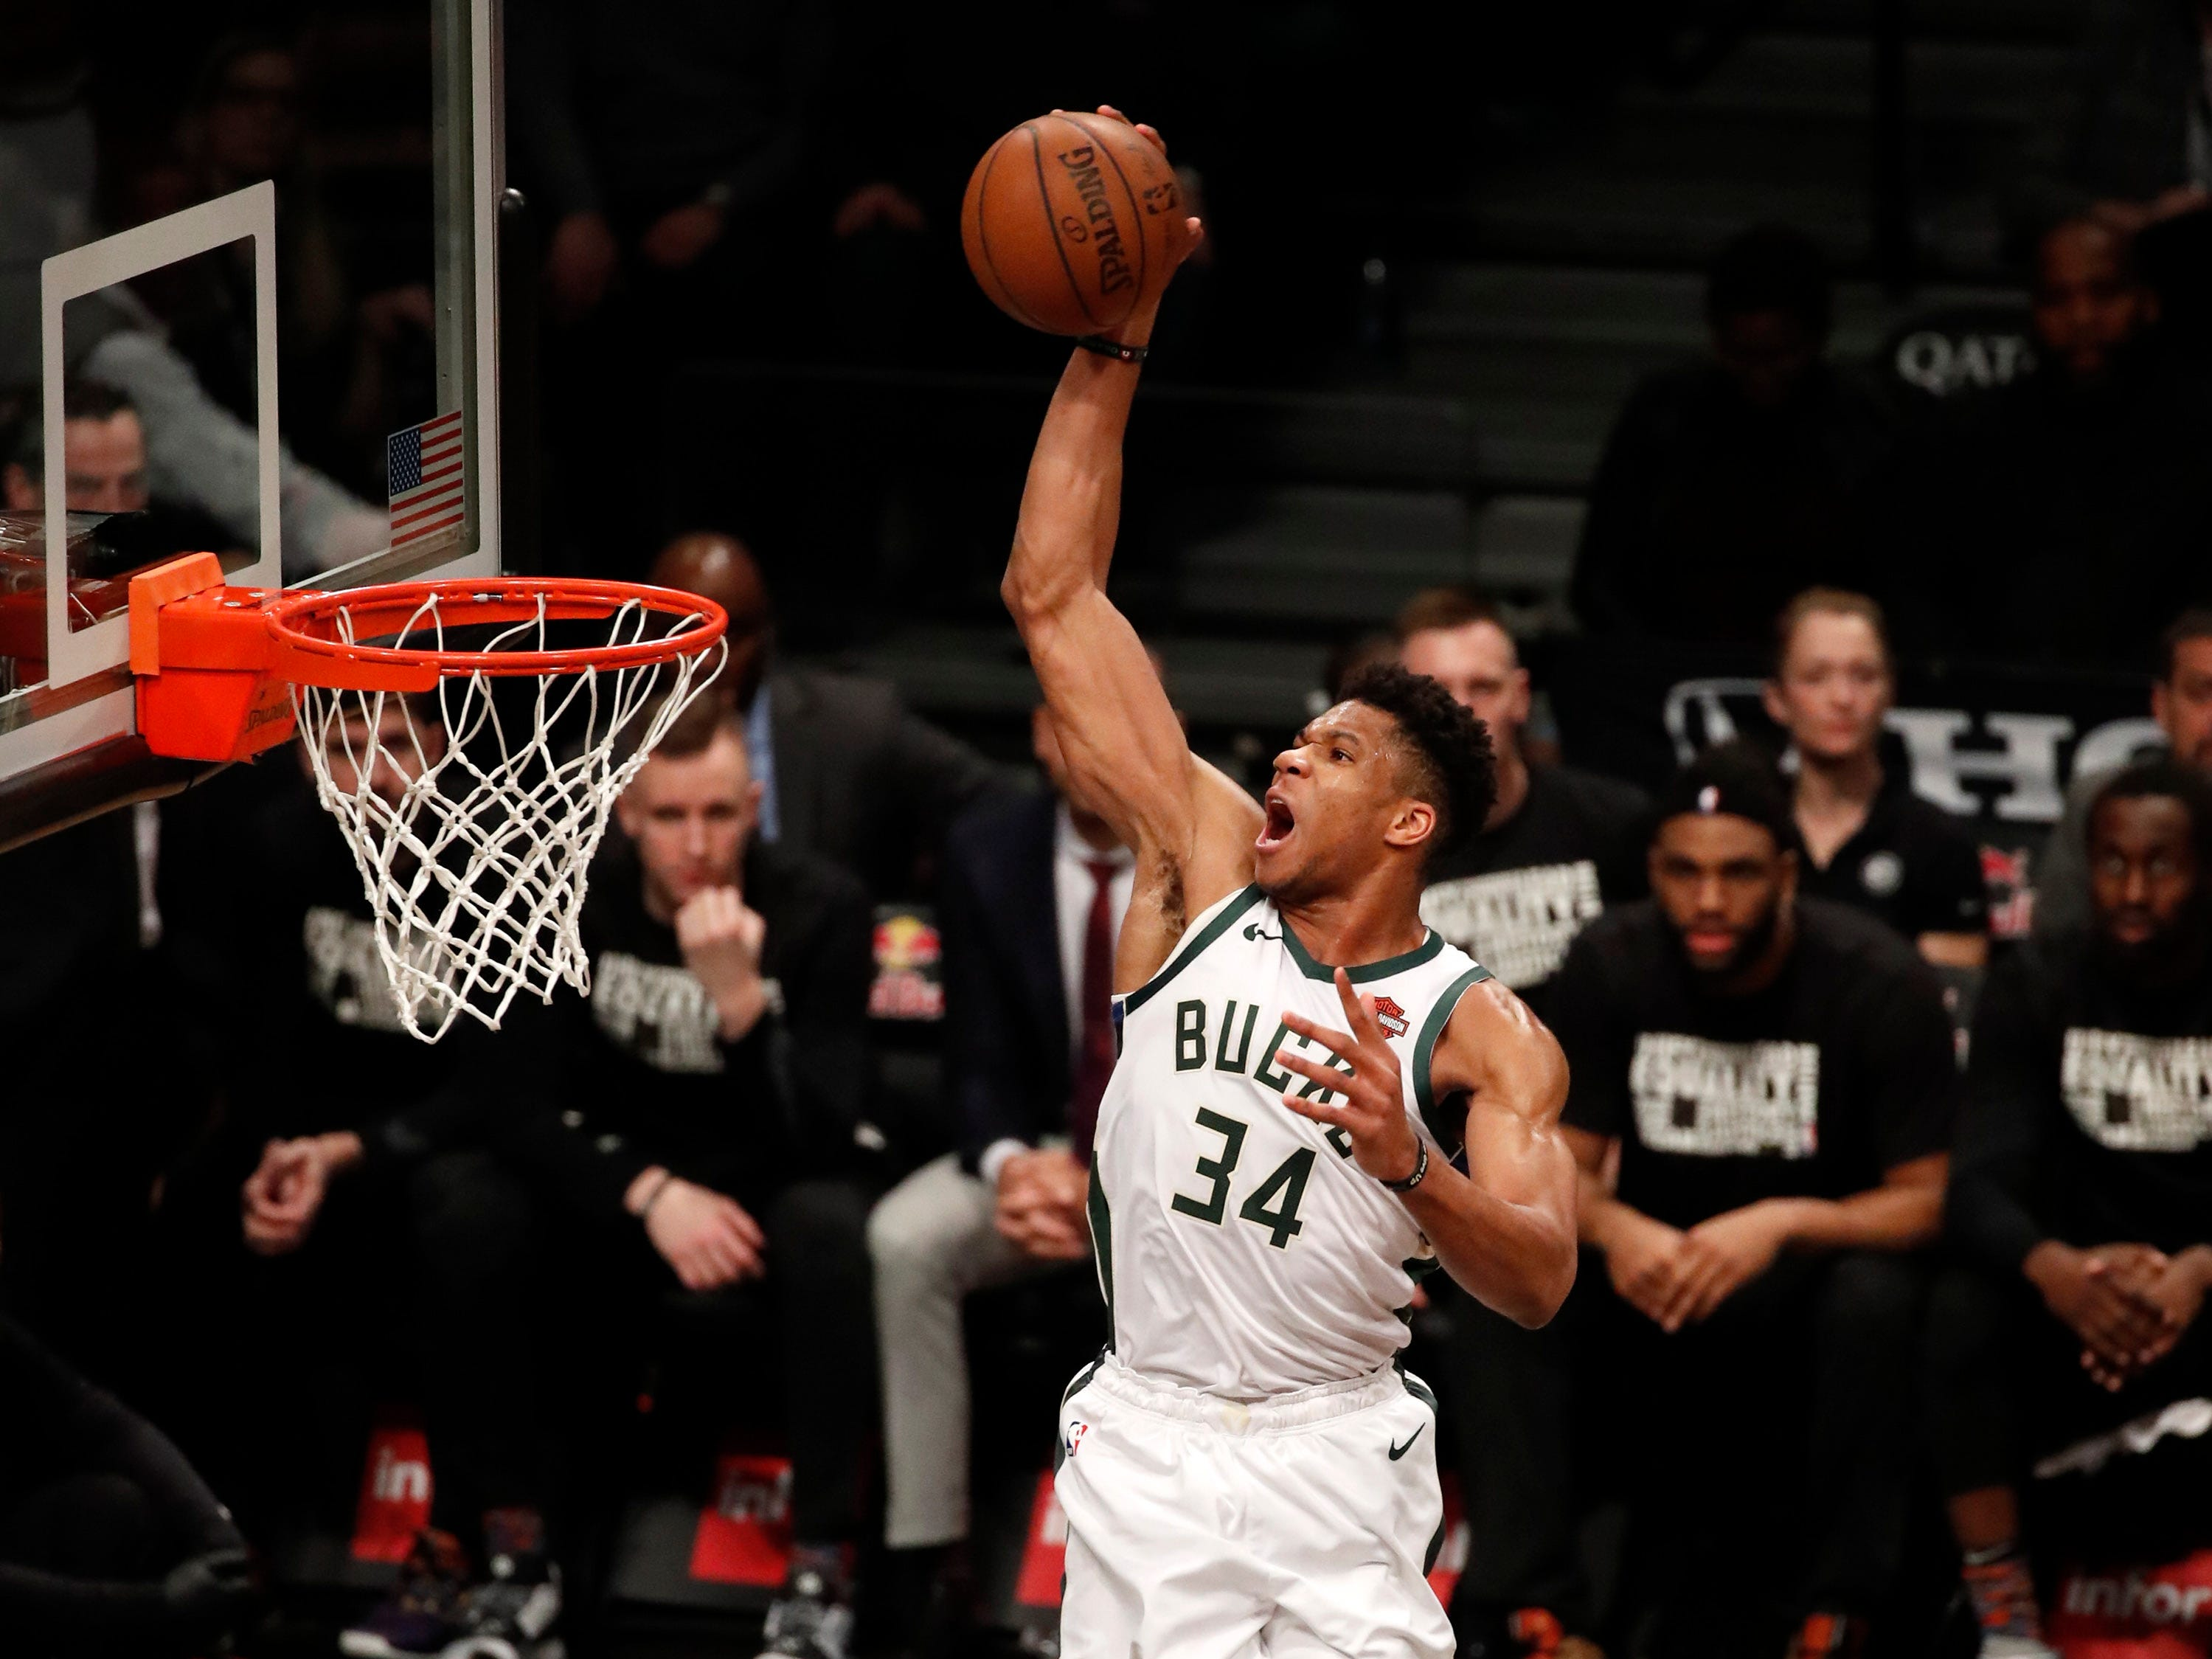 Bucks forward Giannis Antetokounmpo soars in for a dunk during the first half as Nets guard Treveon Graham can only look on.